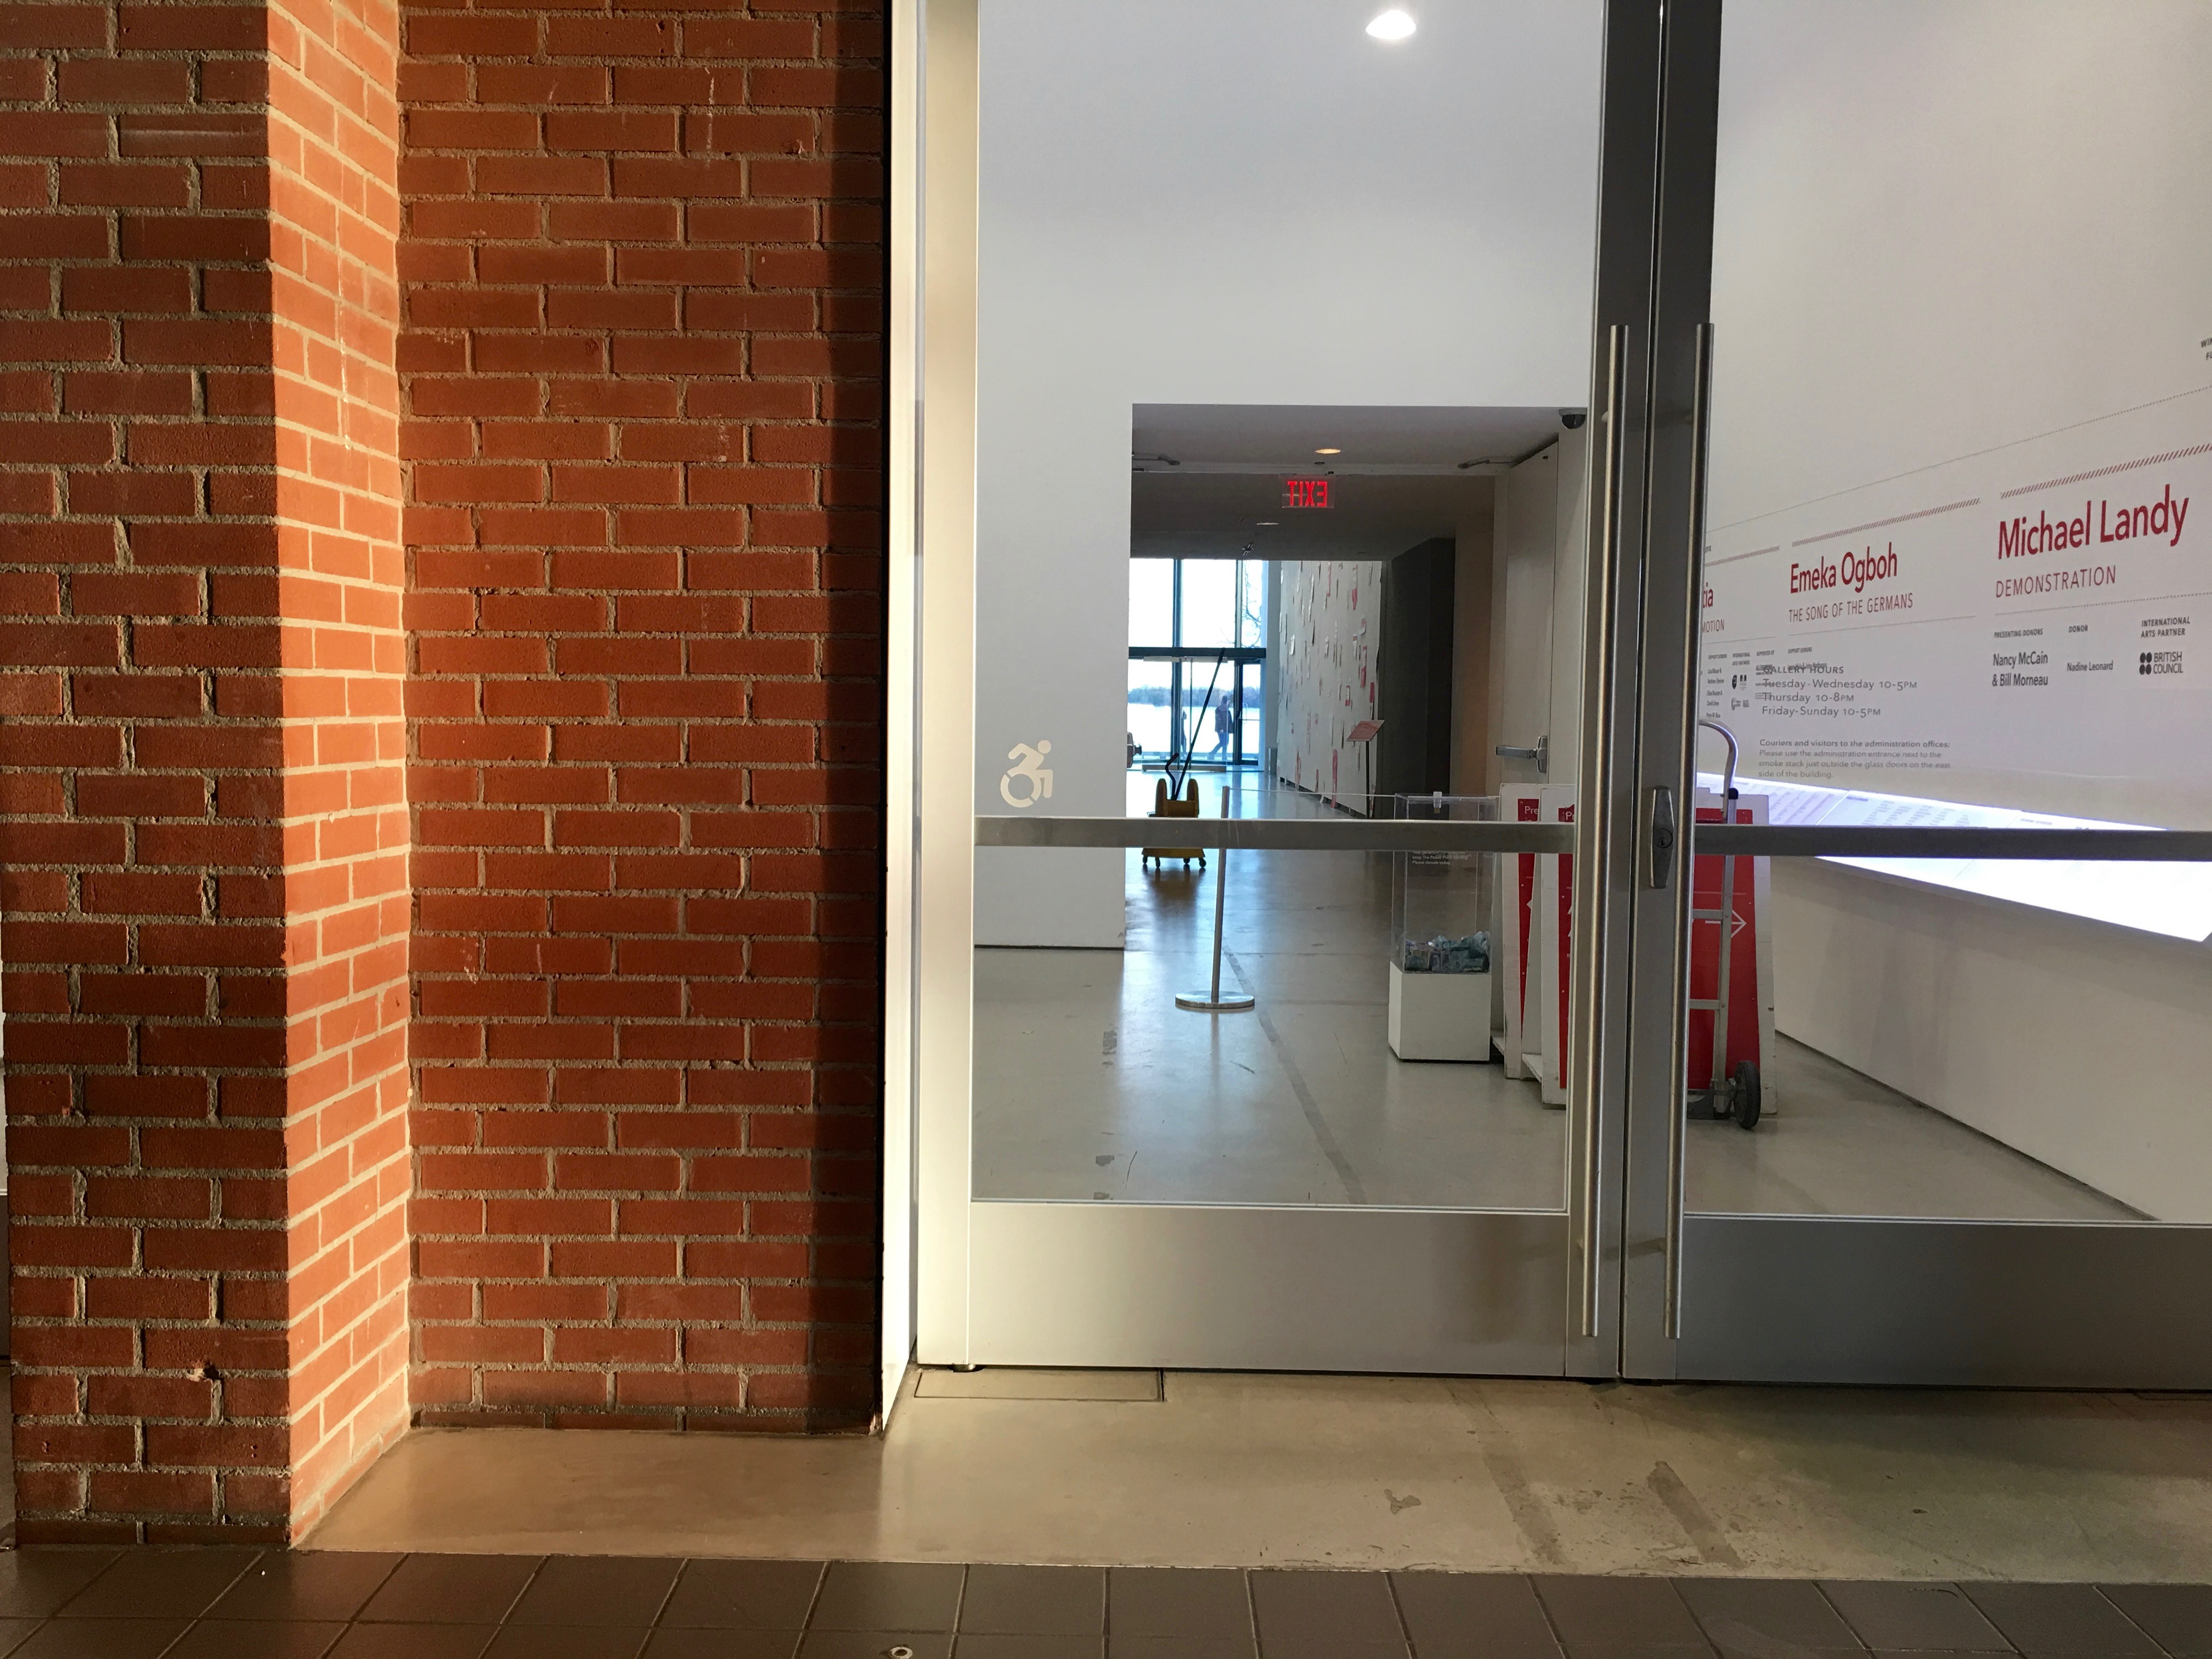 6:59 p.m., March 21, 2018. The Power Plant Contemporary Art Gallery has put the Dynamic Symbol of Access on their front door. This is an example of a place where the updated symbol can be used without contravening the Ontario Building Code.